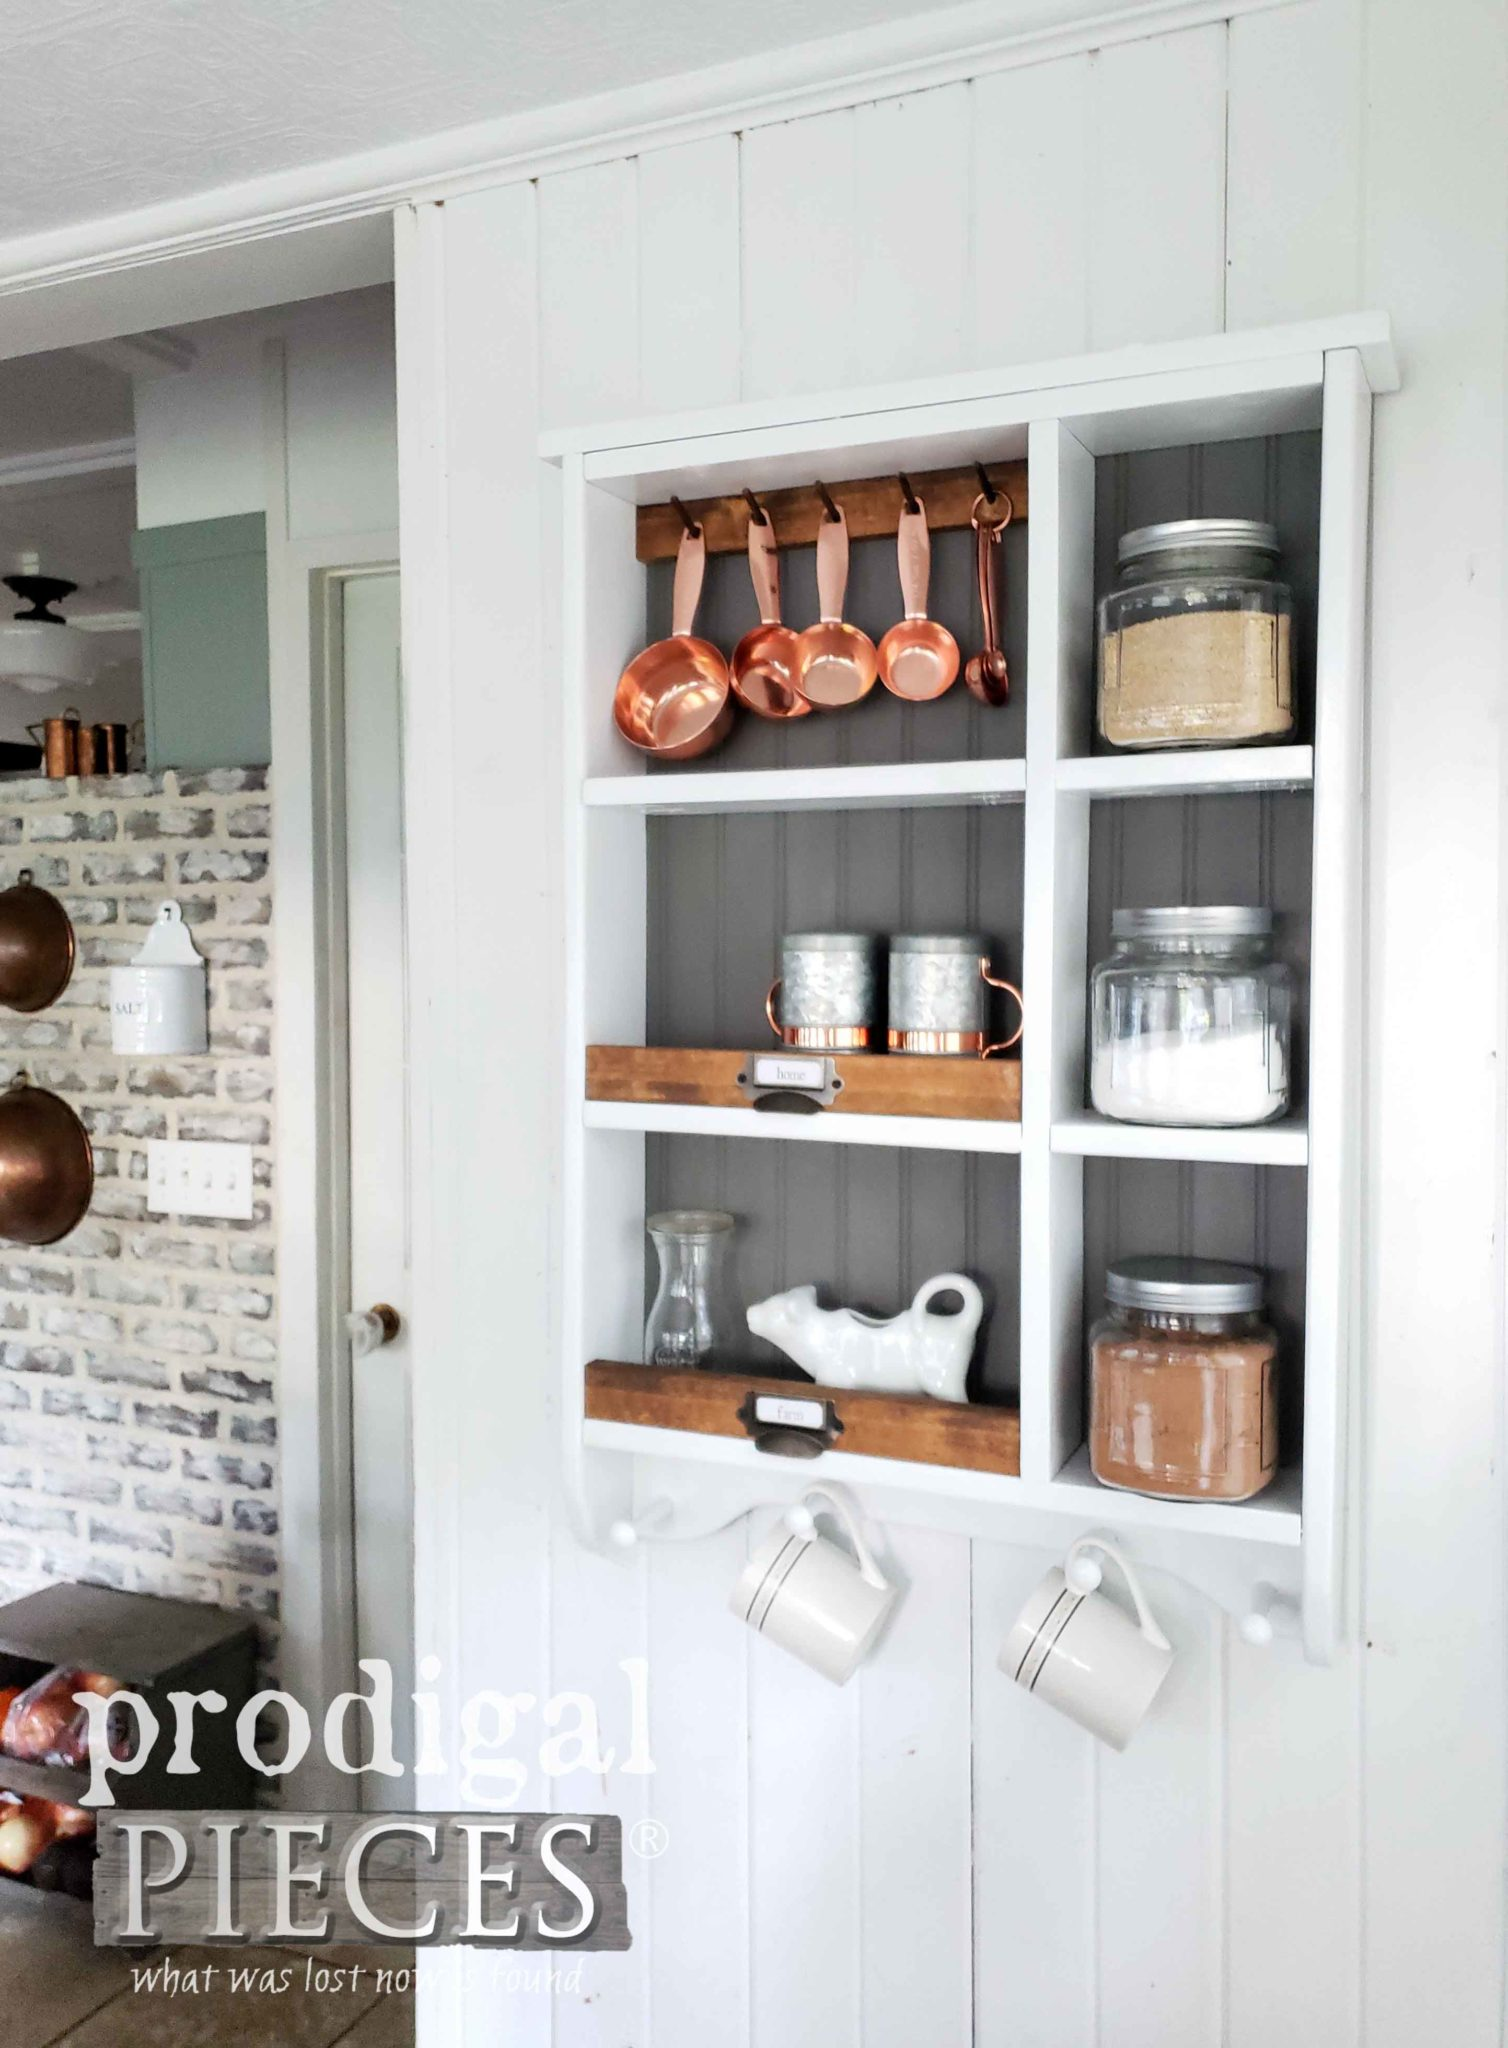 Rustic Chic Modern Farmhouse Style Kitchen with DIY Storage Cubby by Larissa of Prodigal Pieces | prodigalpieces.com